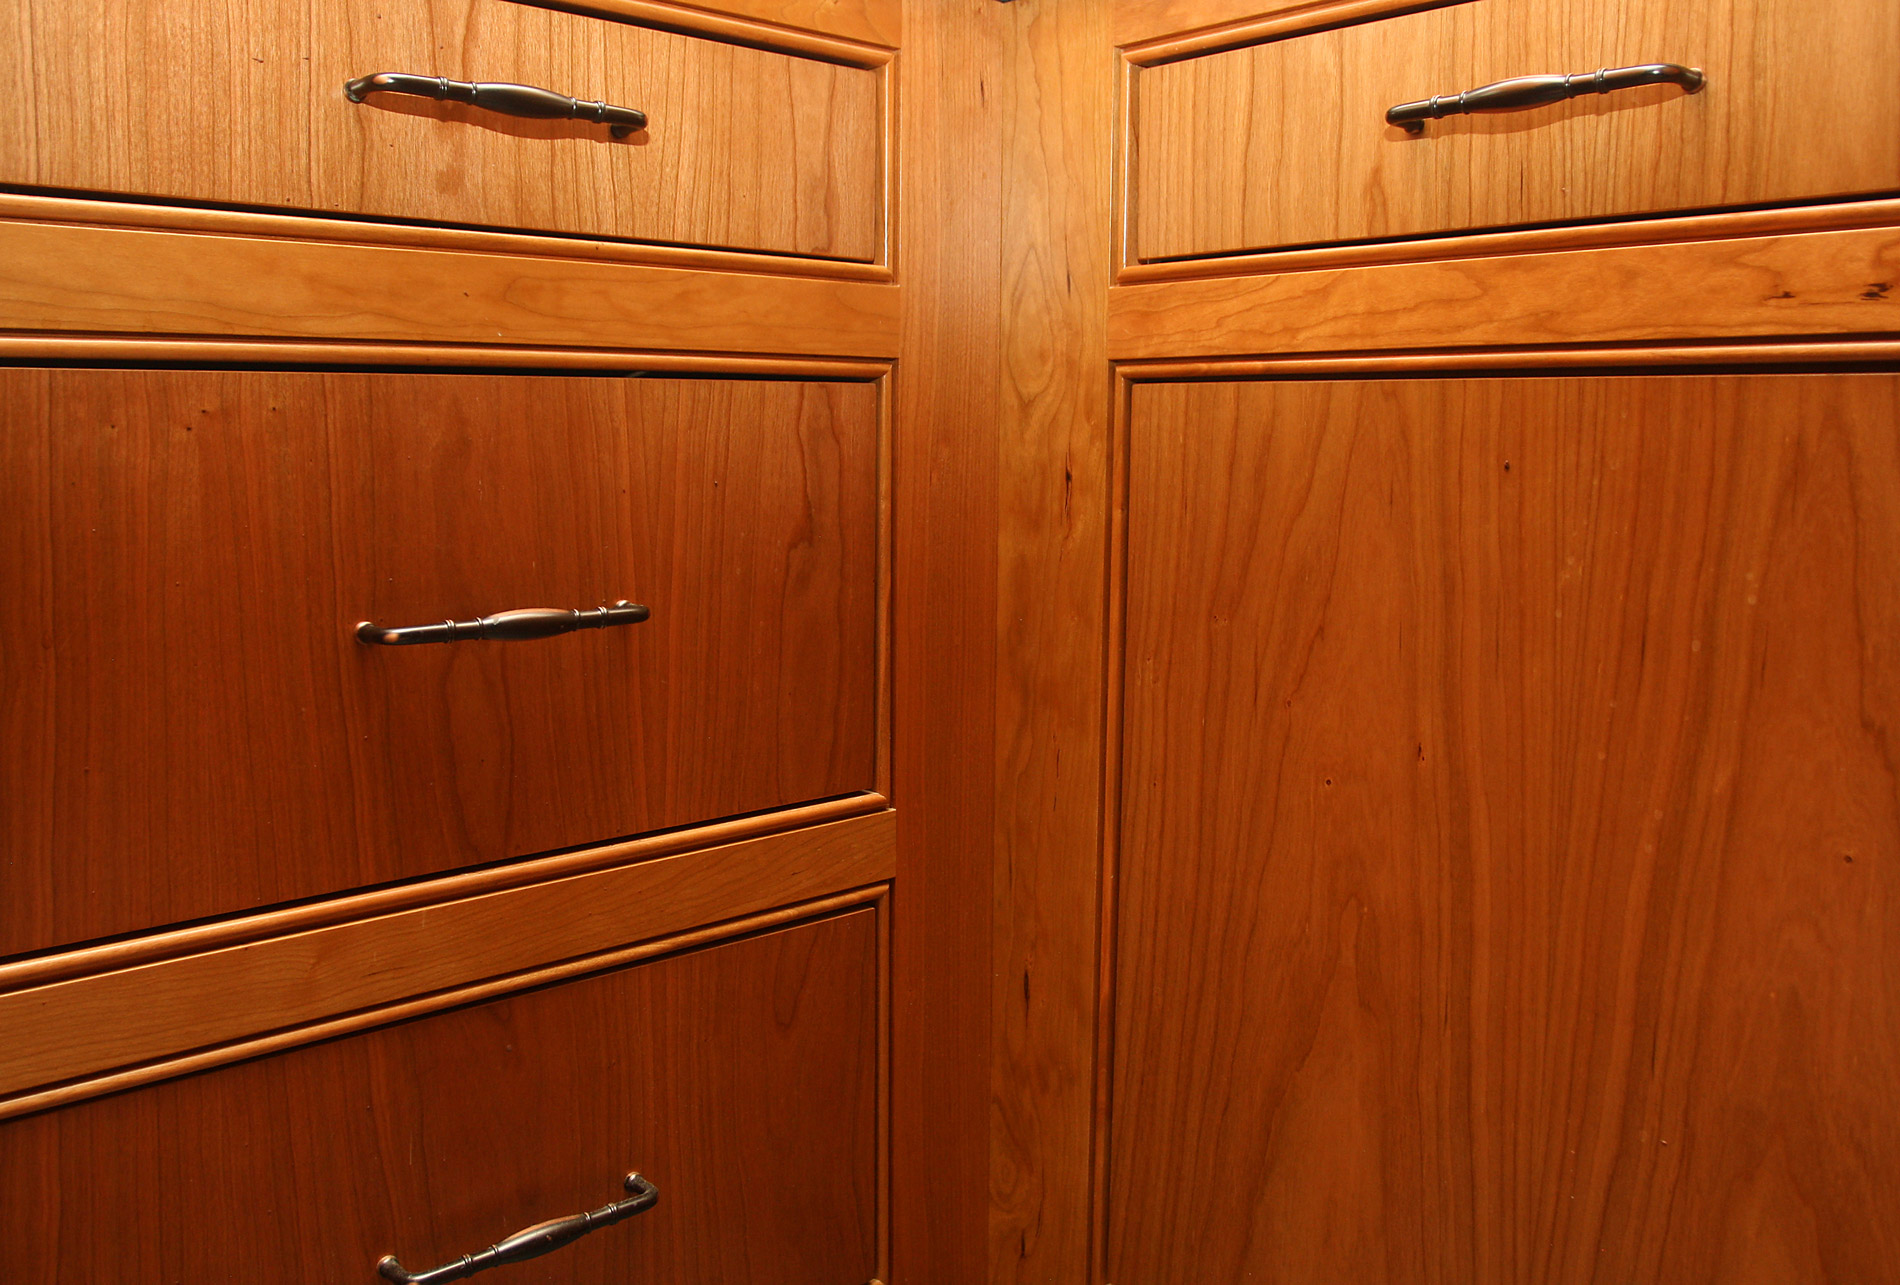 Matched Grain Cabinets